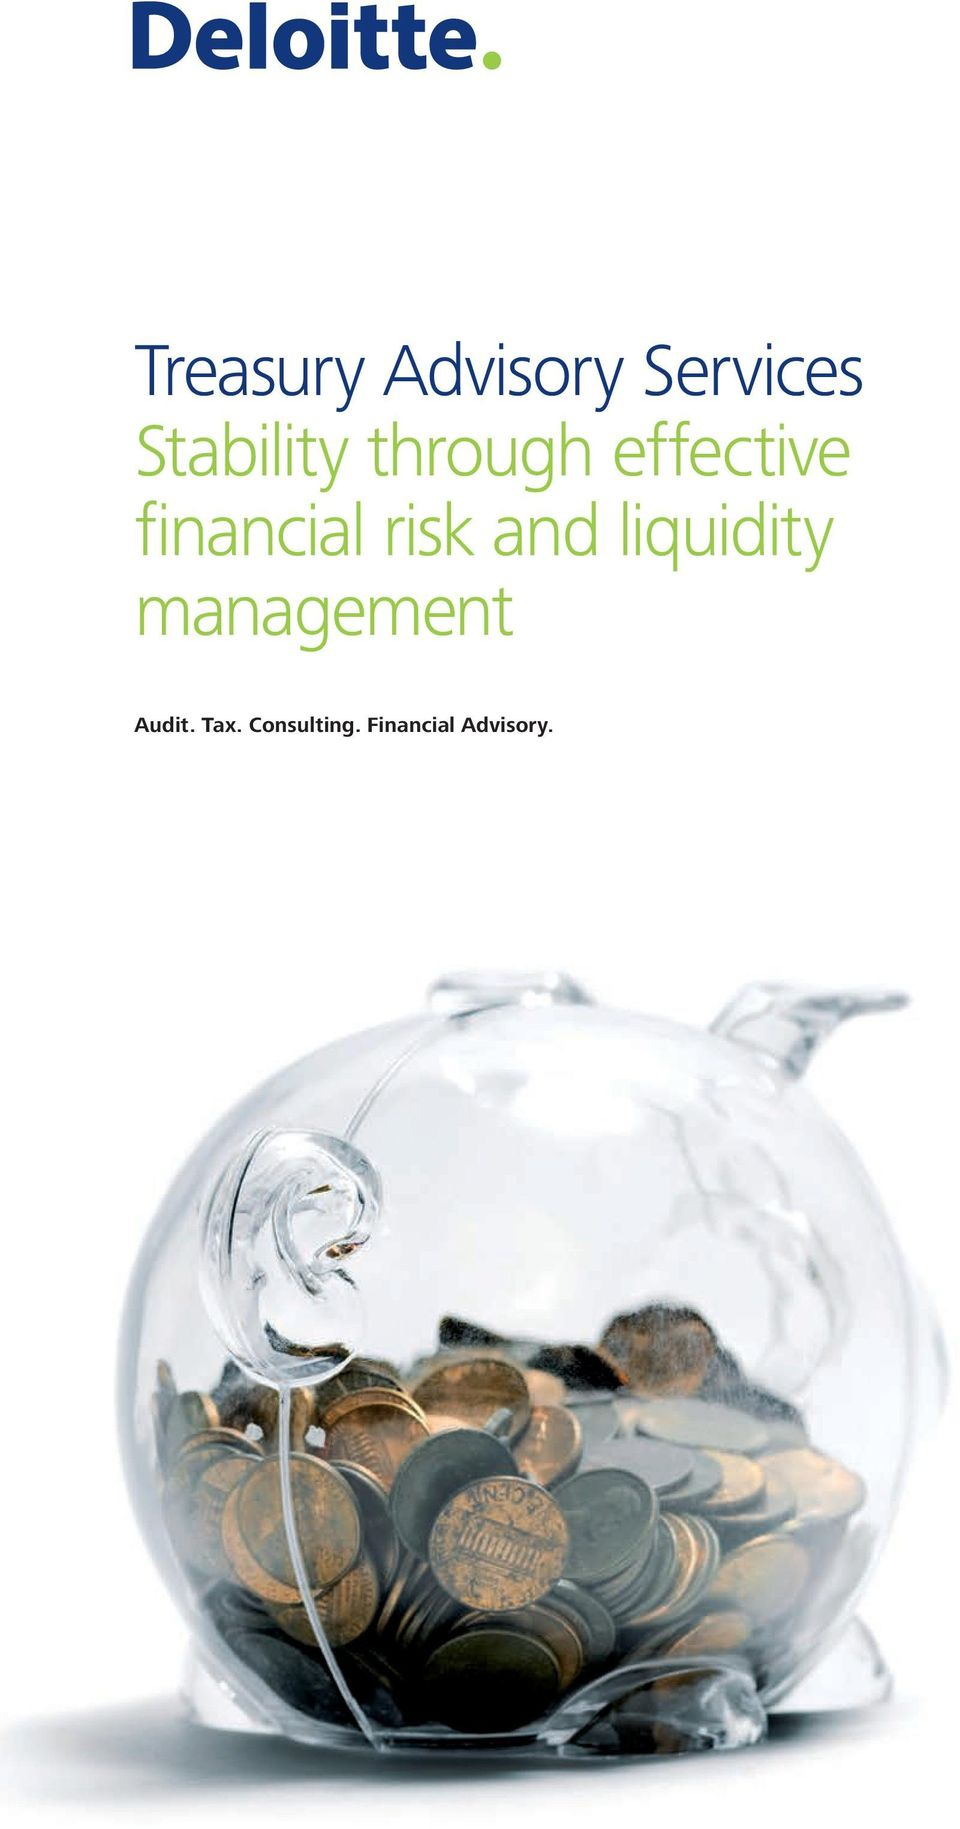 financial risk and liquidity